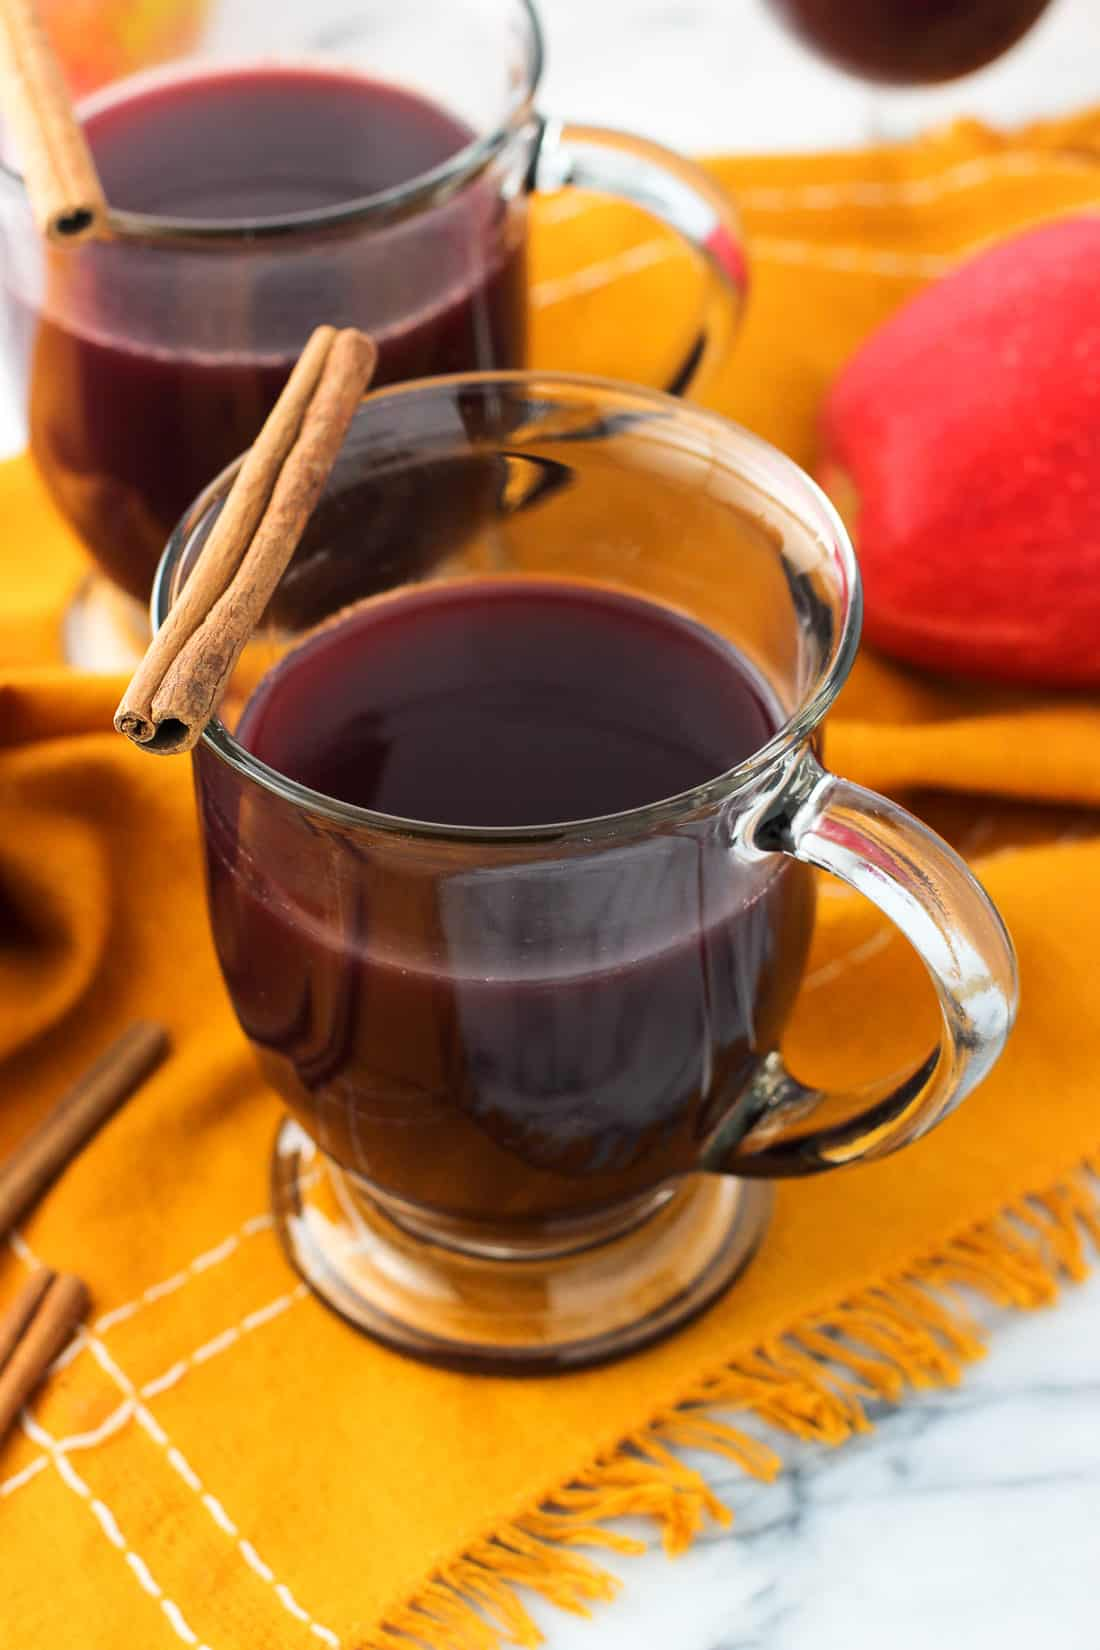 Ginger mulled wine is an easy, warmly-spiced drink that will fill your kitchen with a wondrous aroma. This cozy, semi-homemade version features a spice shortcut with a kick from fresh ginger.